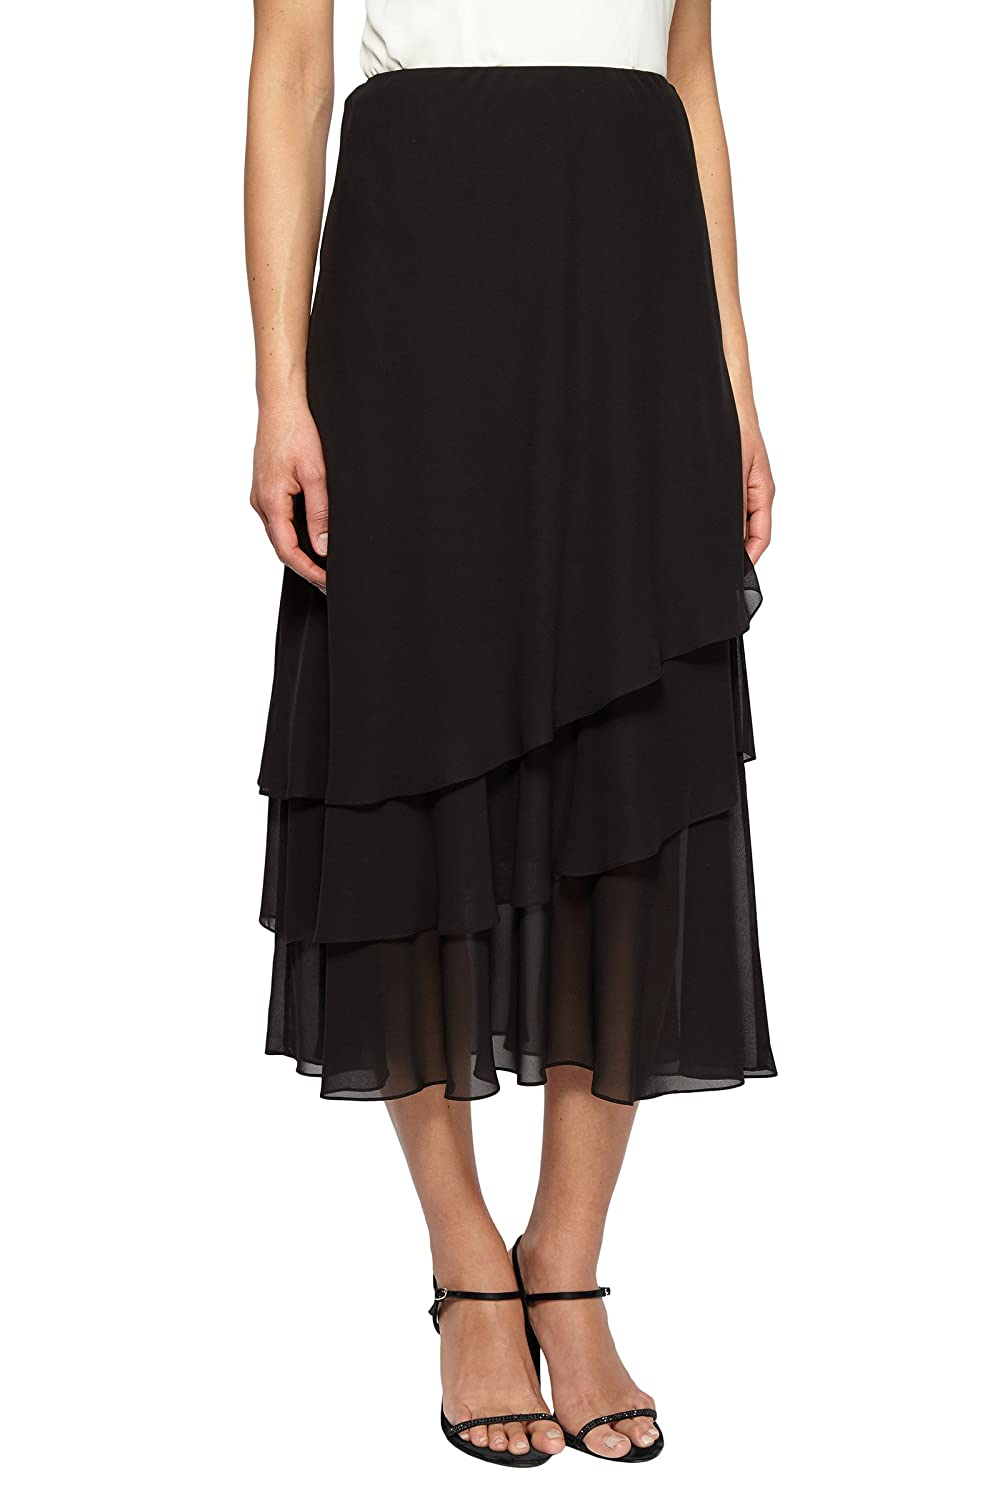 Alex Evenings Women's Chiffon Skirt Various Styles (Petite and Regular Sizes) 270387